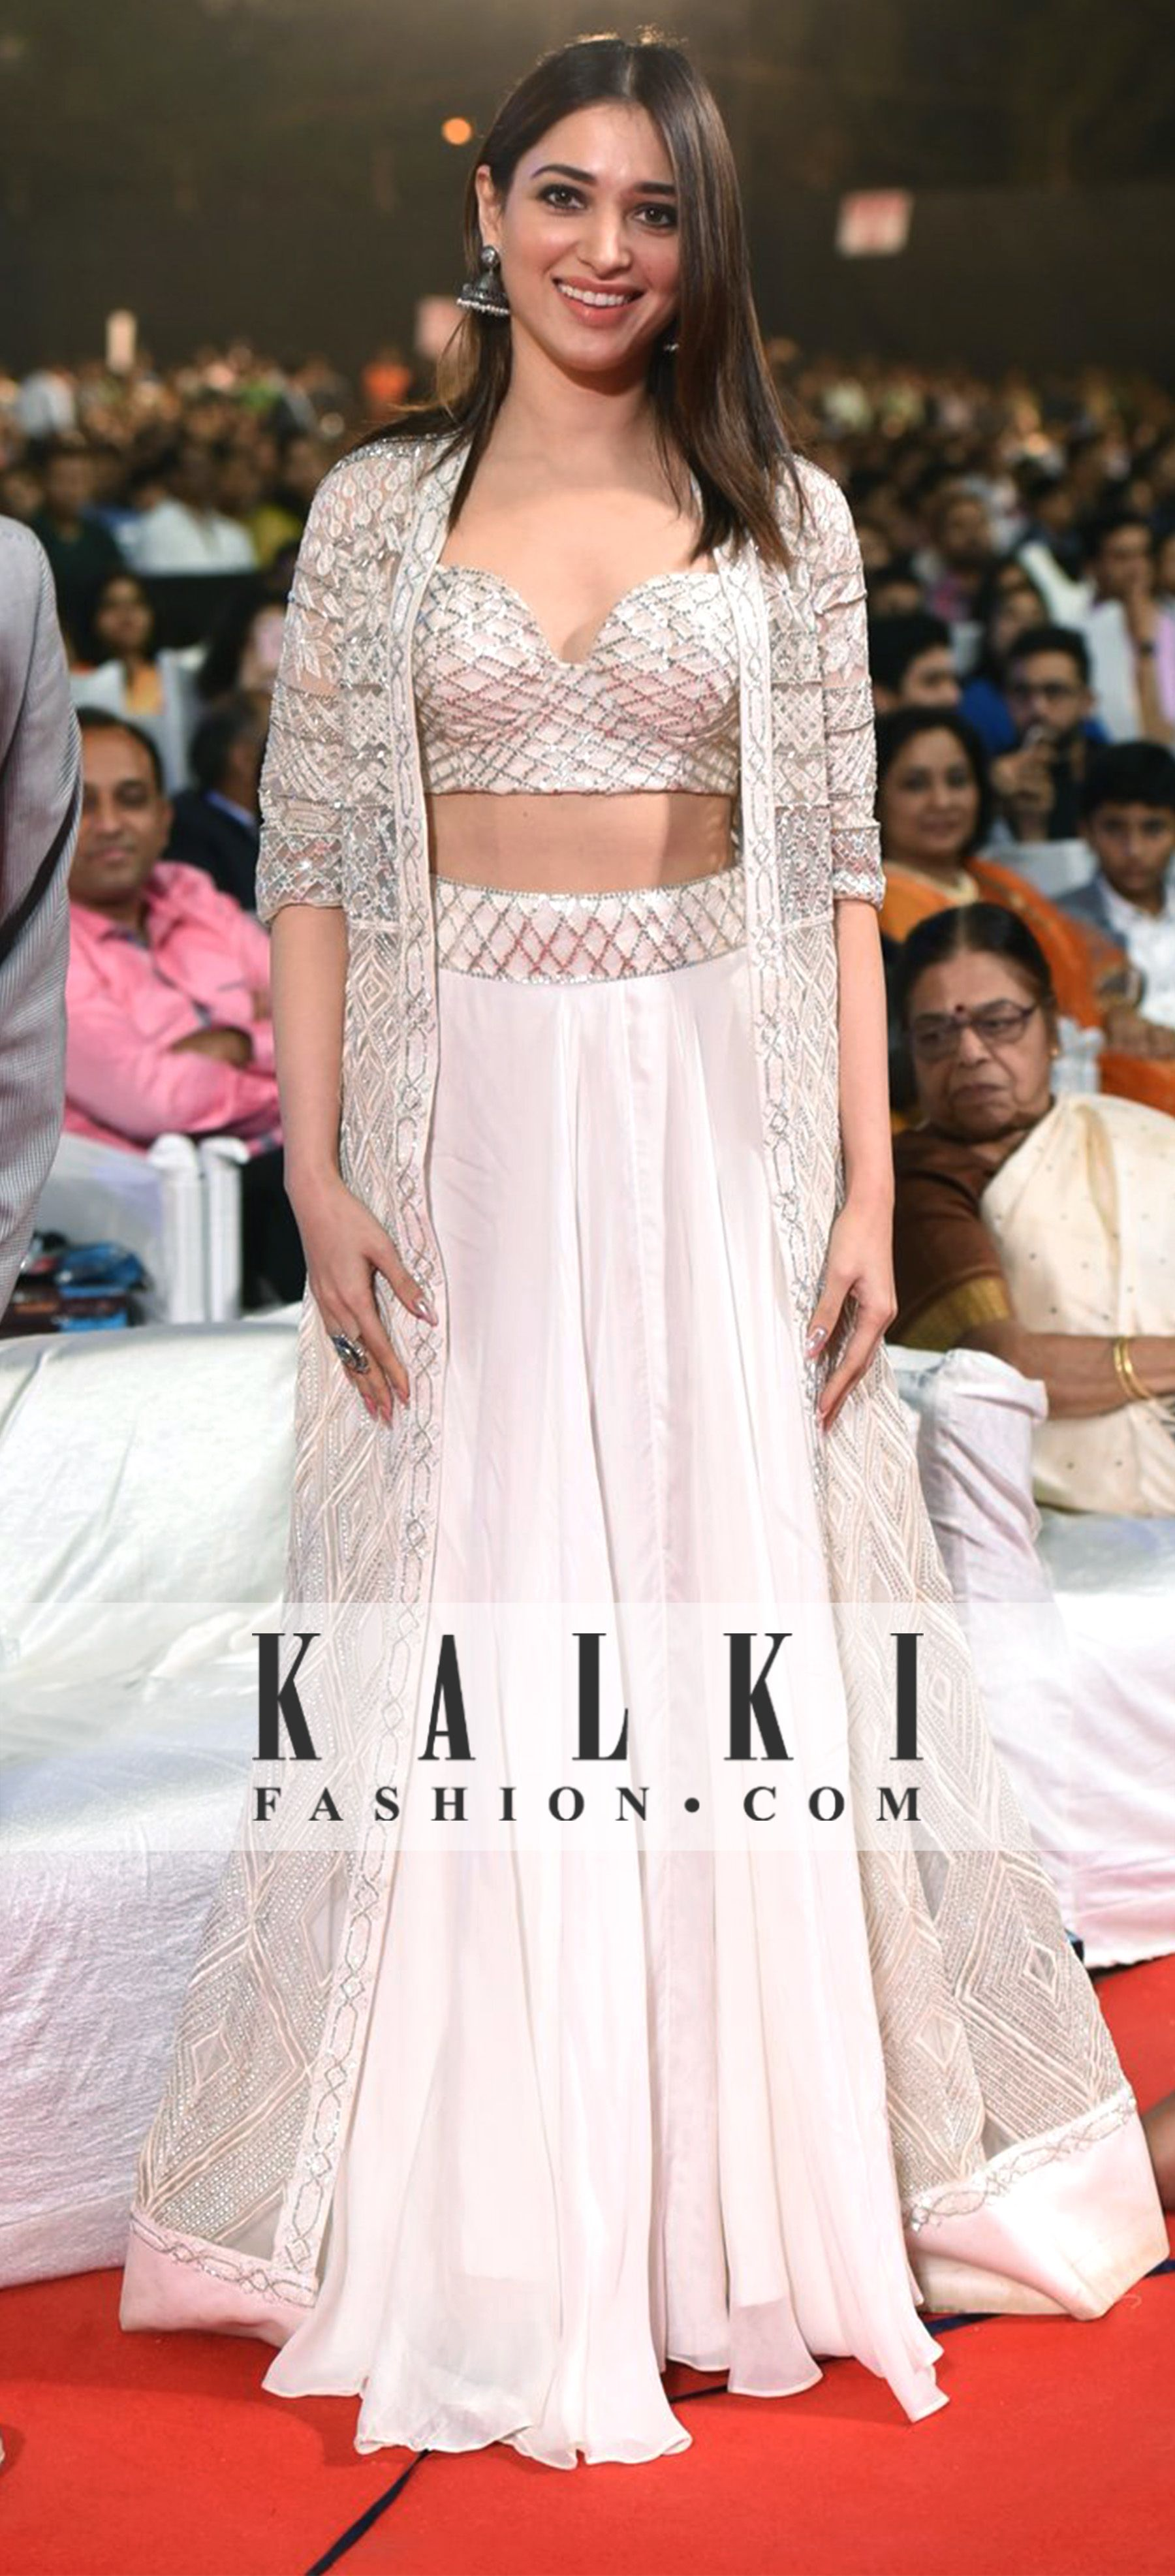 b79dc37655 Shop for Womens Indian dresses, Indian Wedding and Party wear dresses and  other Indian Clothing Online at KalkiFashion.com , the largest online  ethnic wear ...